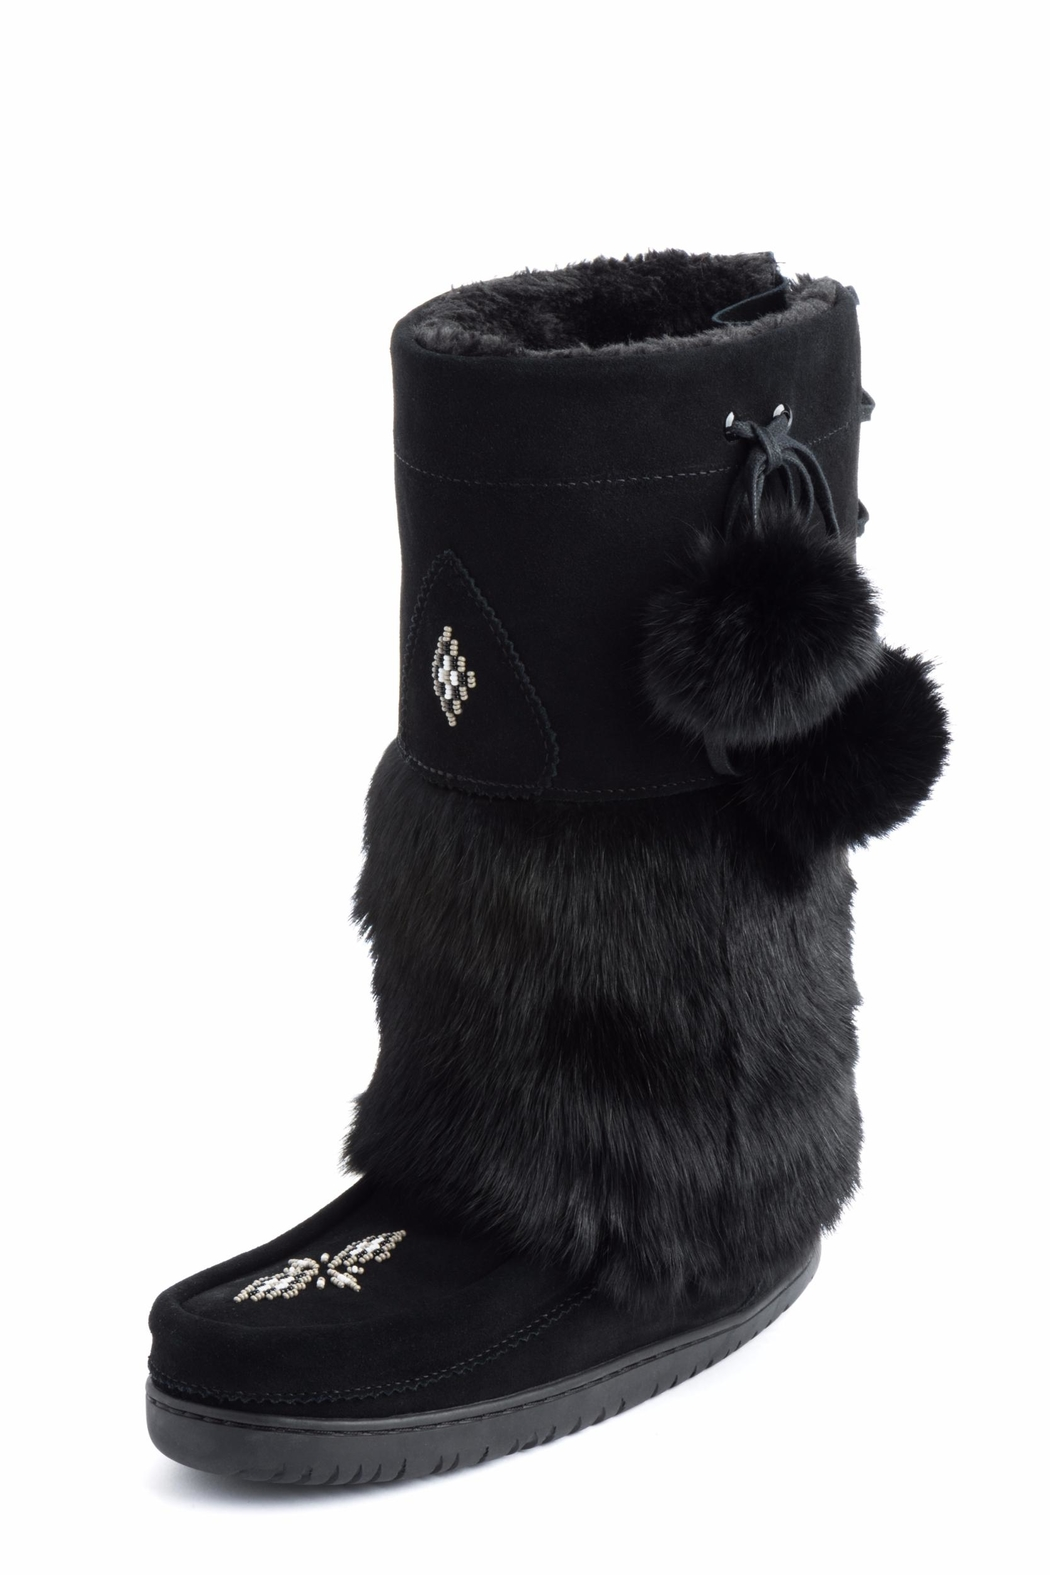 Manitobah Mukluks Adjustable Snowy Owl Boots - Main Image